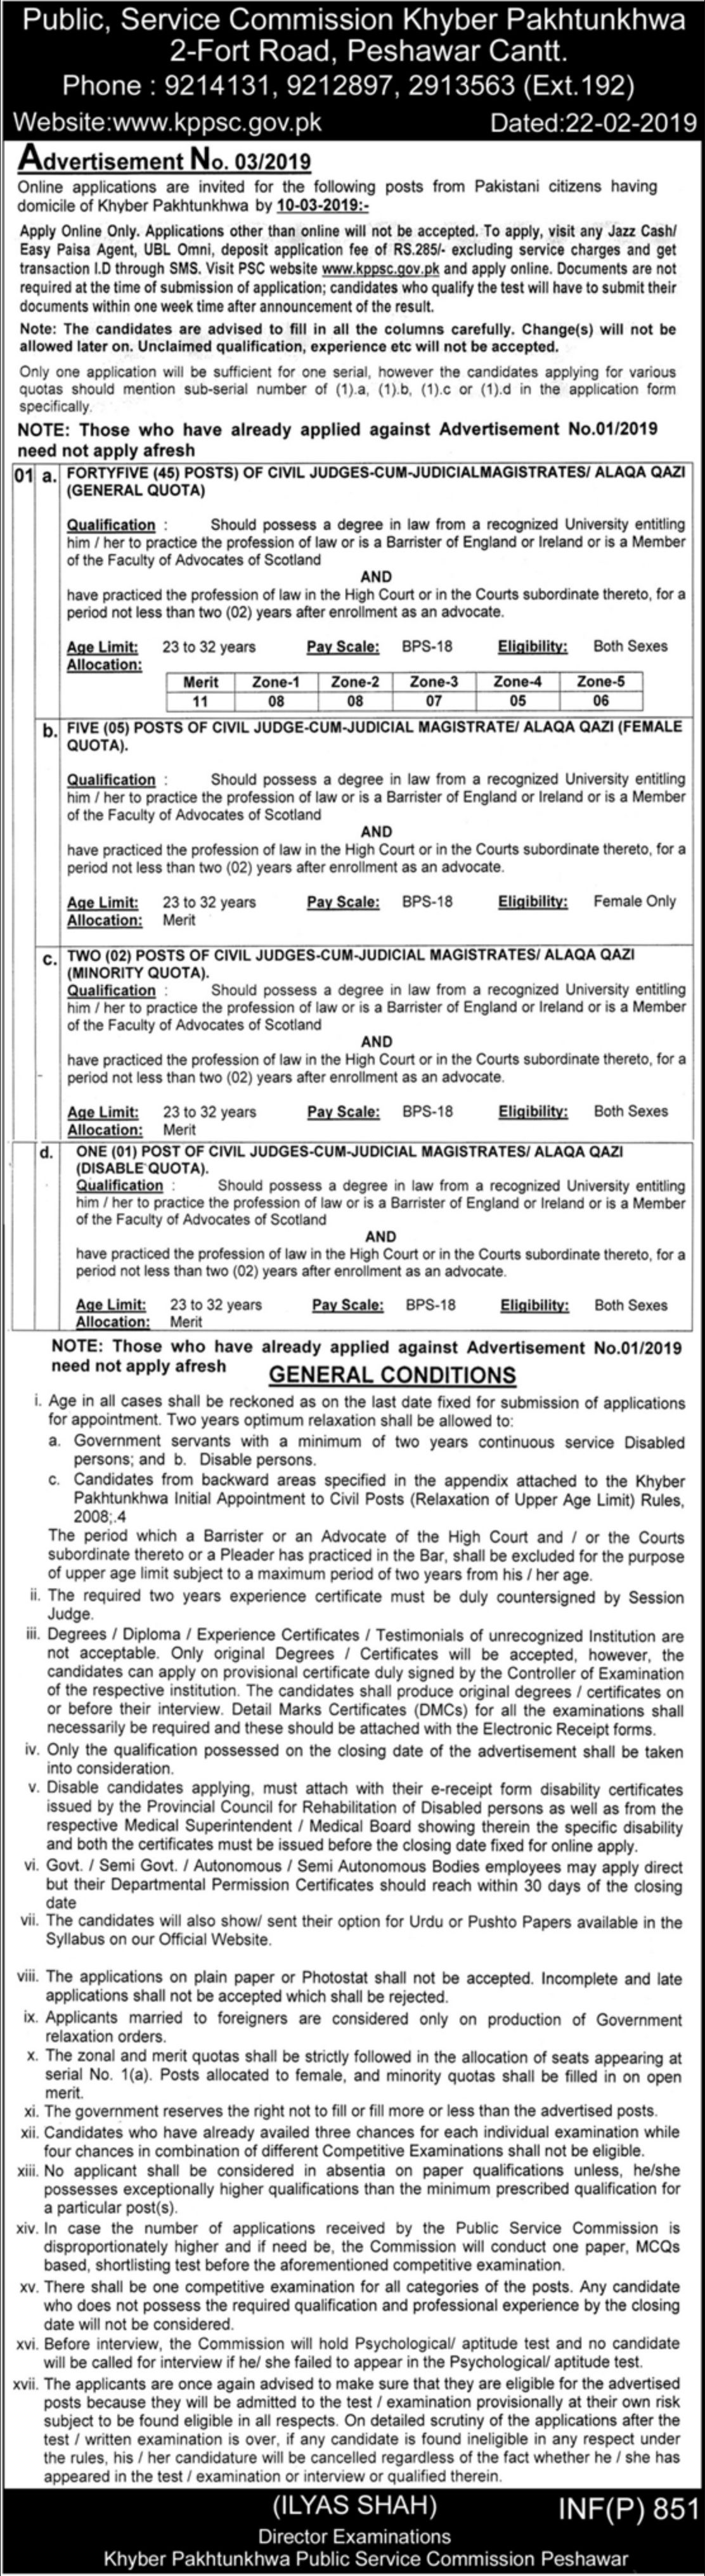 KPPSC Jobs 2019 Public Service Commission KPK